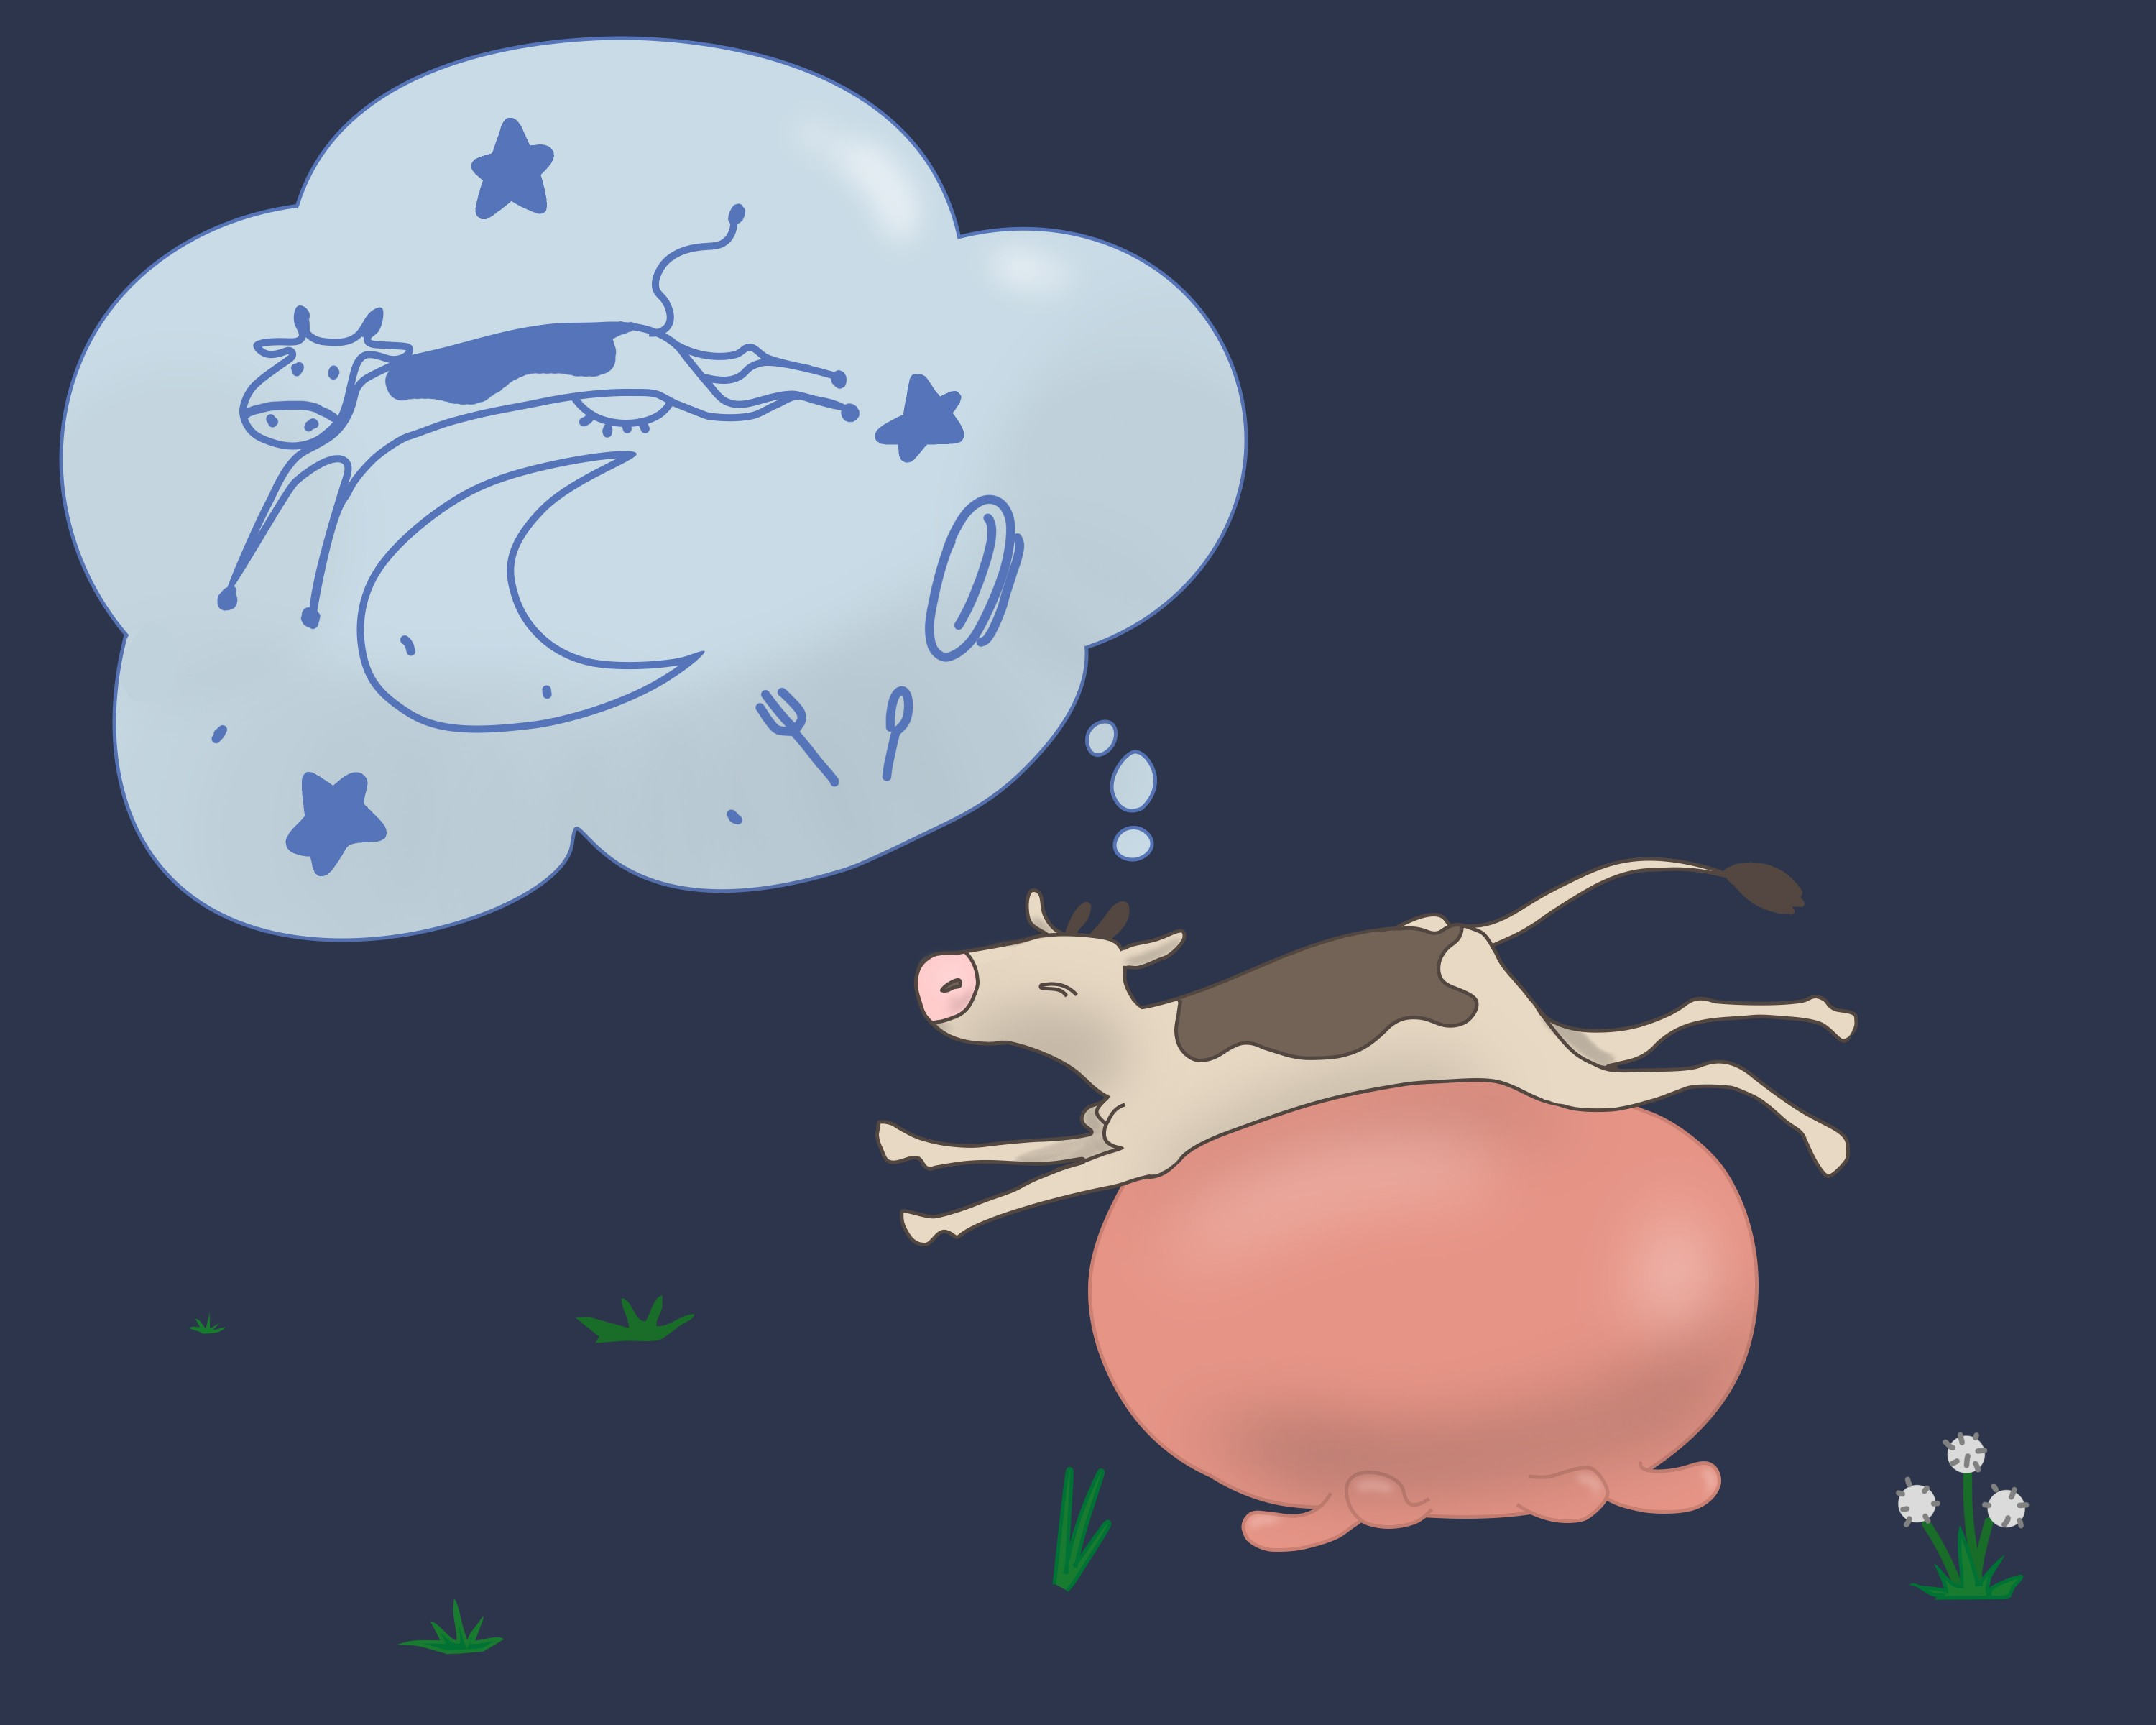 the cow is dreaming of jumping over the moon.